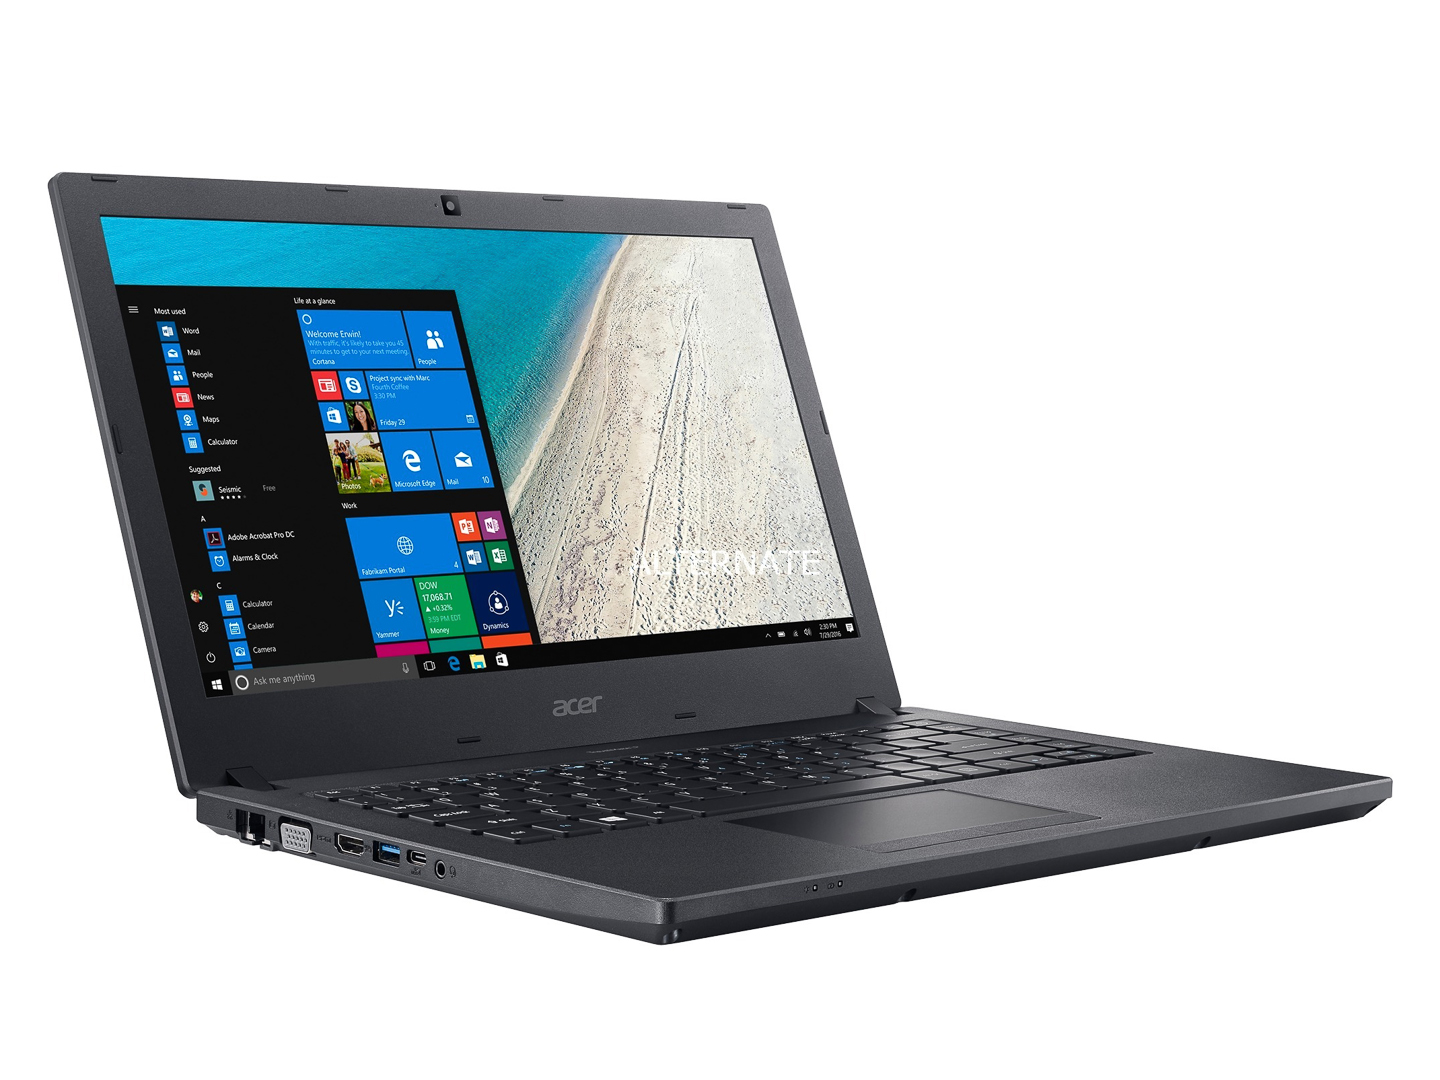 ACER TRAVELMATE P2510-MG WINDOWS 8 X64 TREIBER